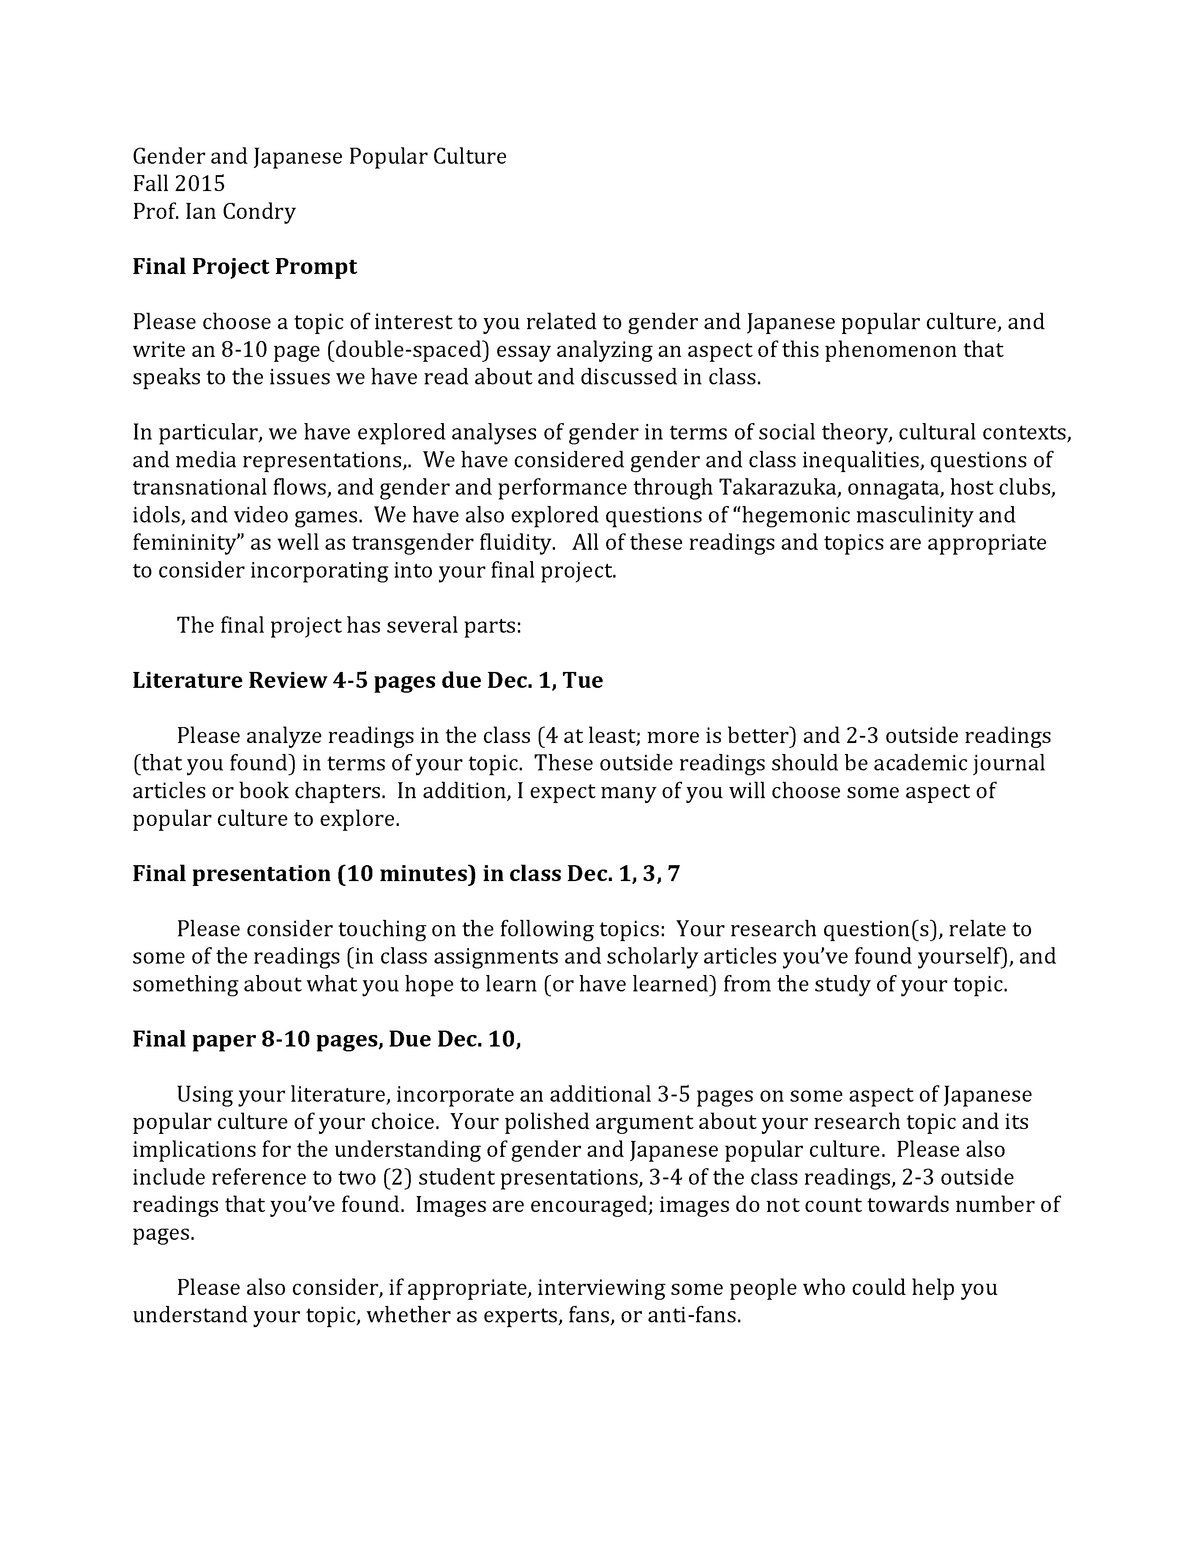 Final Project Prompt Seminar assignments - WGS 154J - MIT